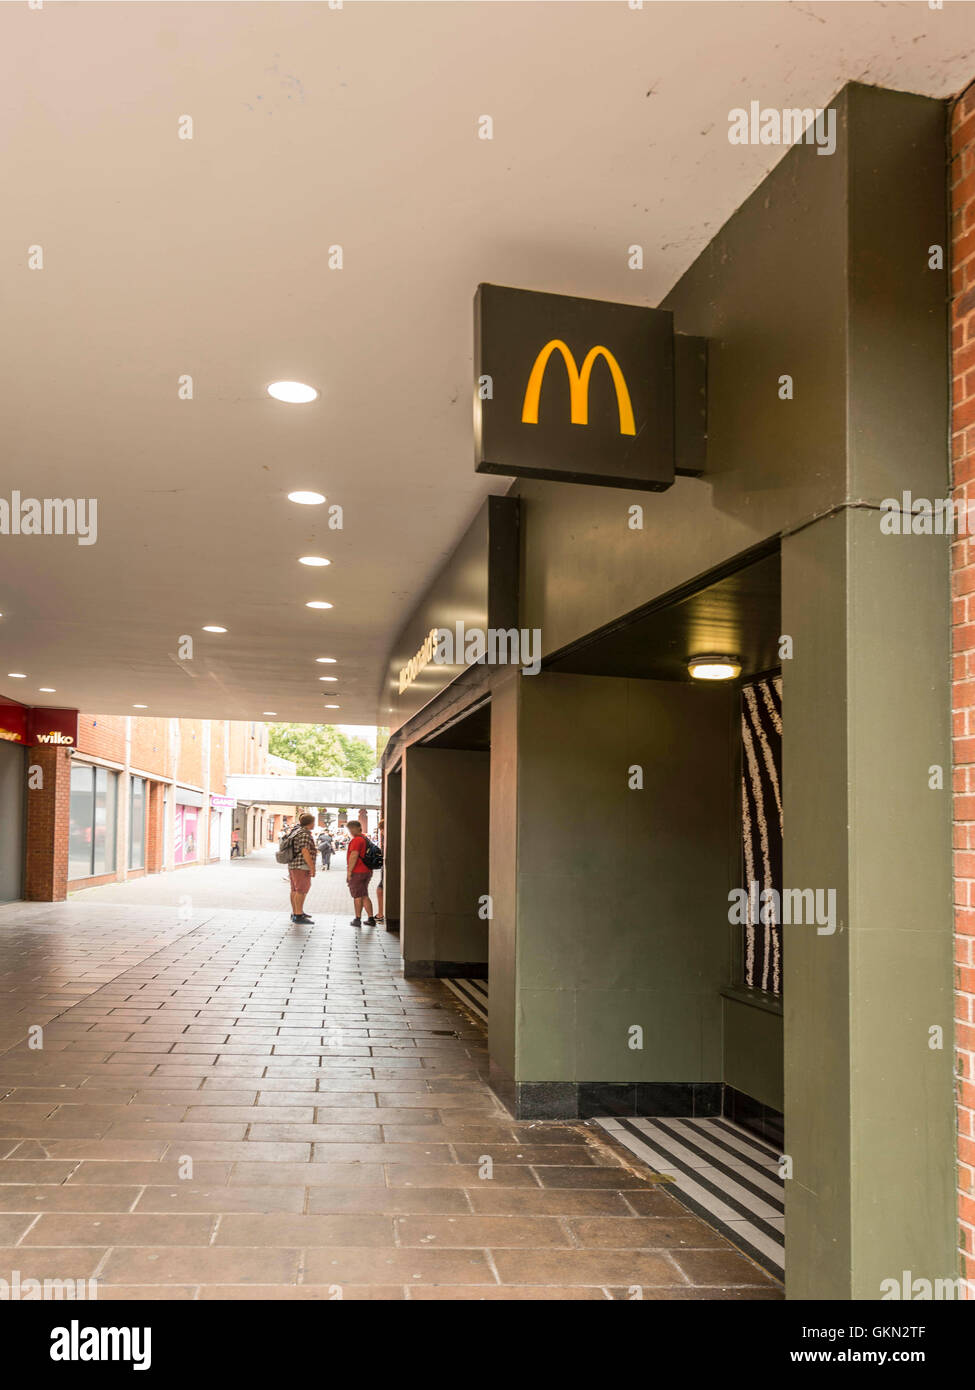 Eating Outlet Stock Photos & Eating Outlet Stock Images - Alamy